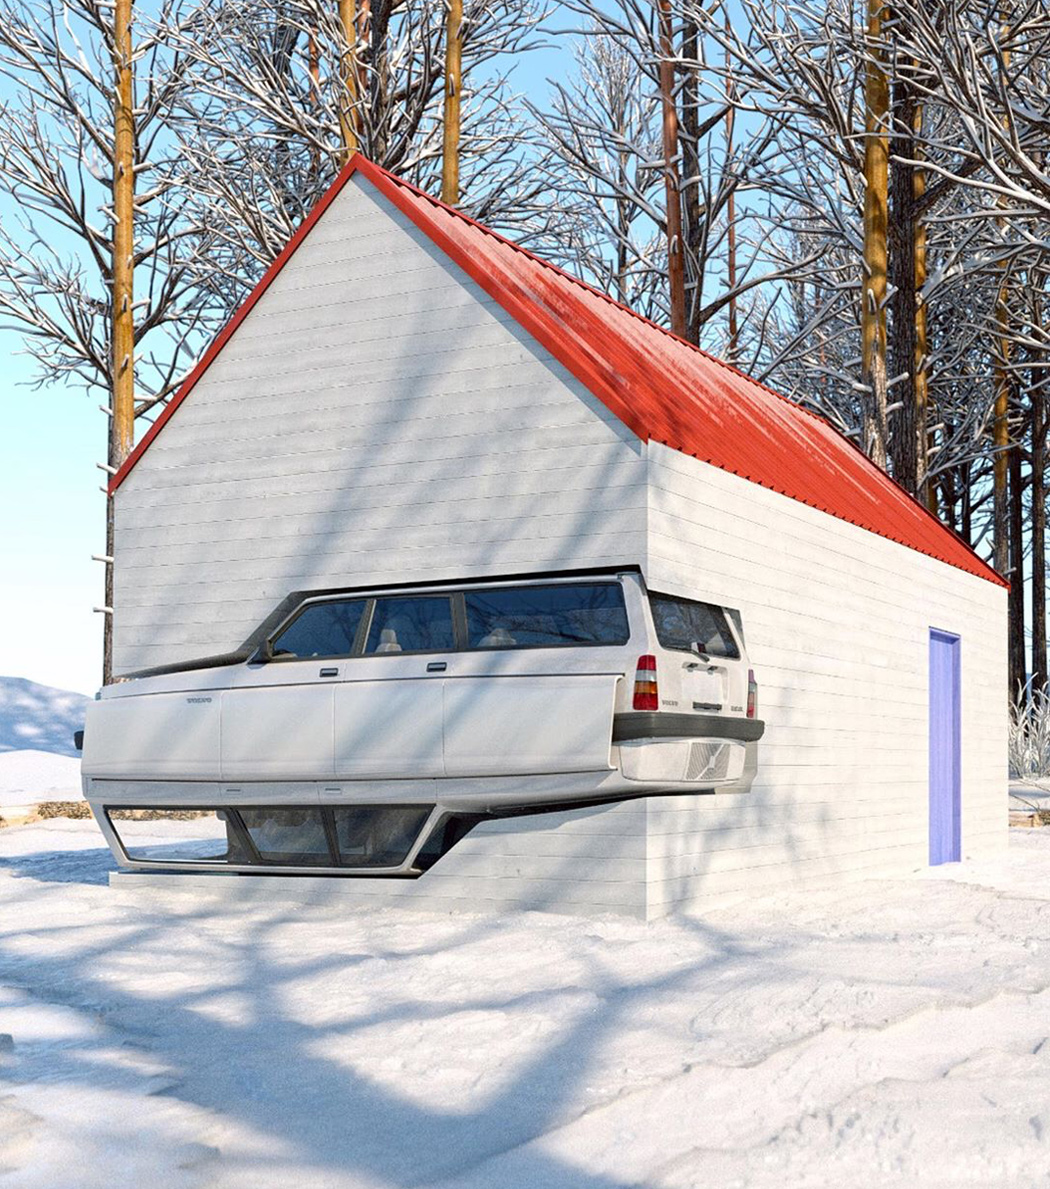 Volvo 240 Merged With A Winter Cabin